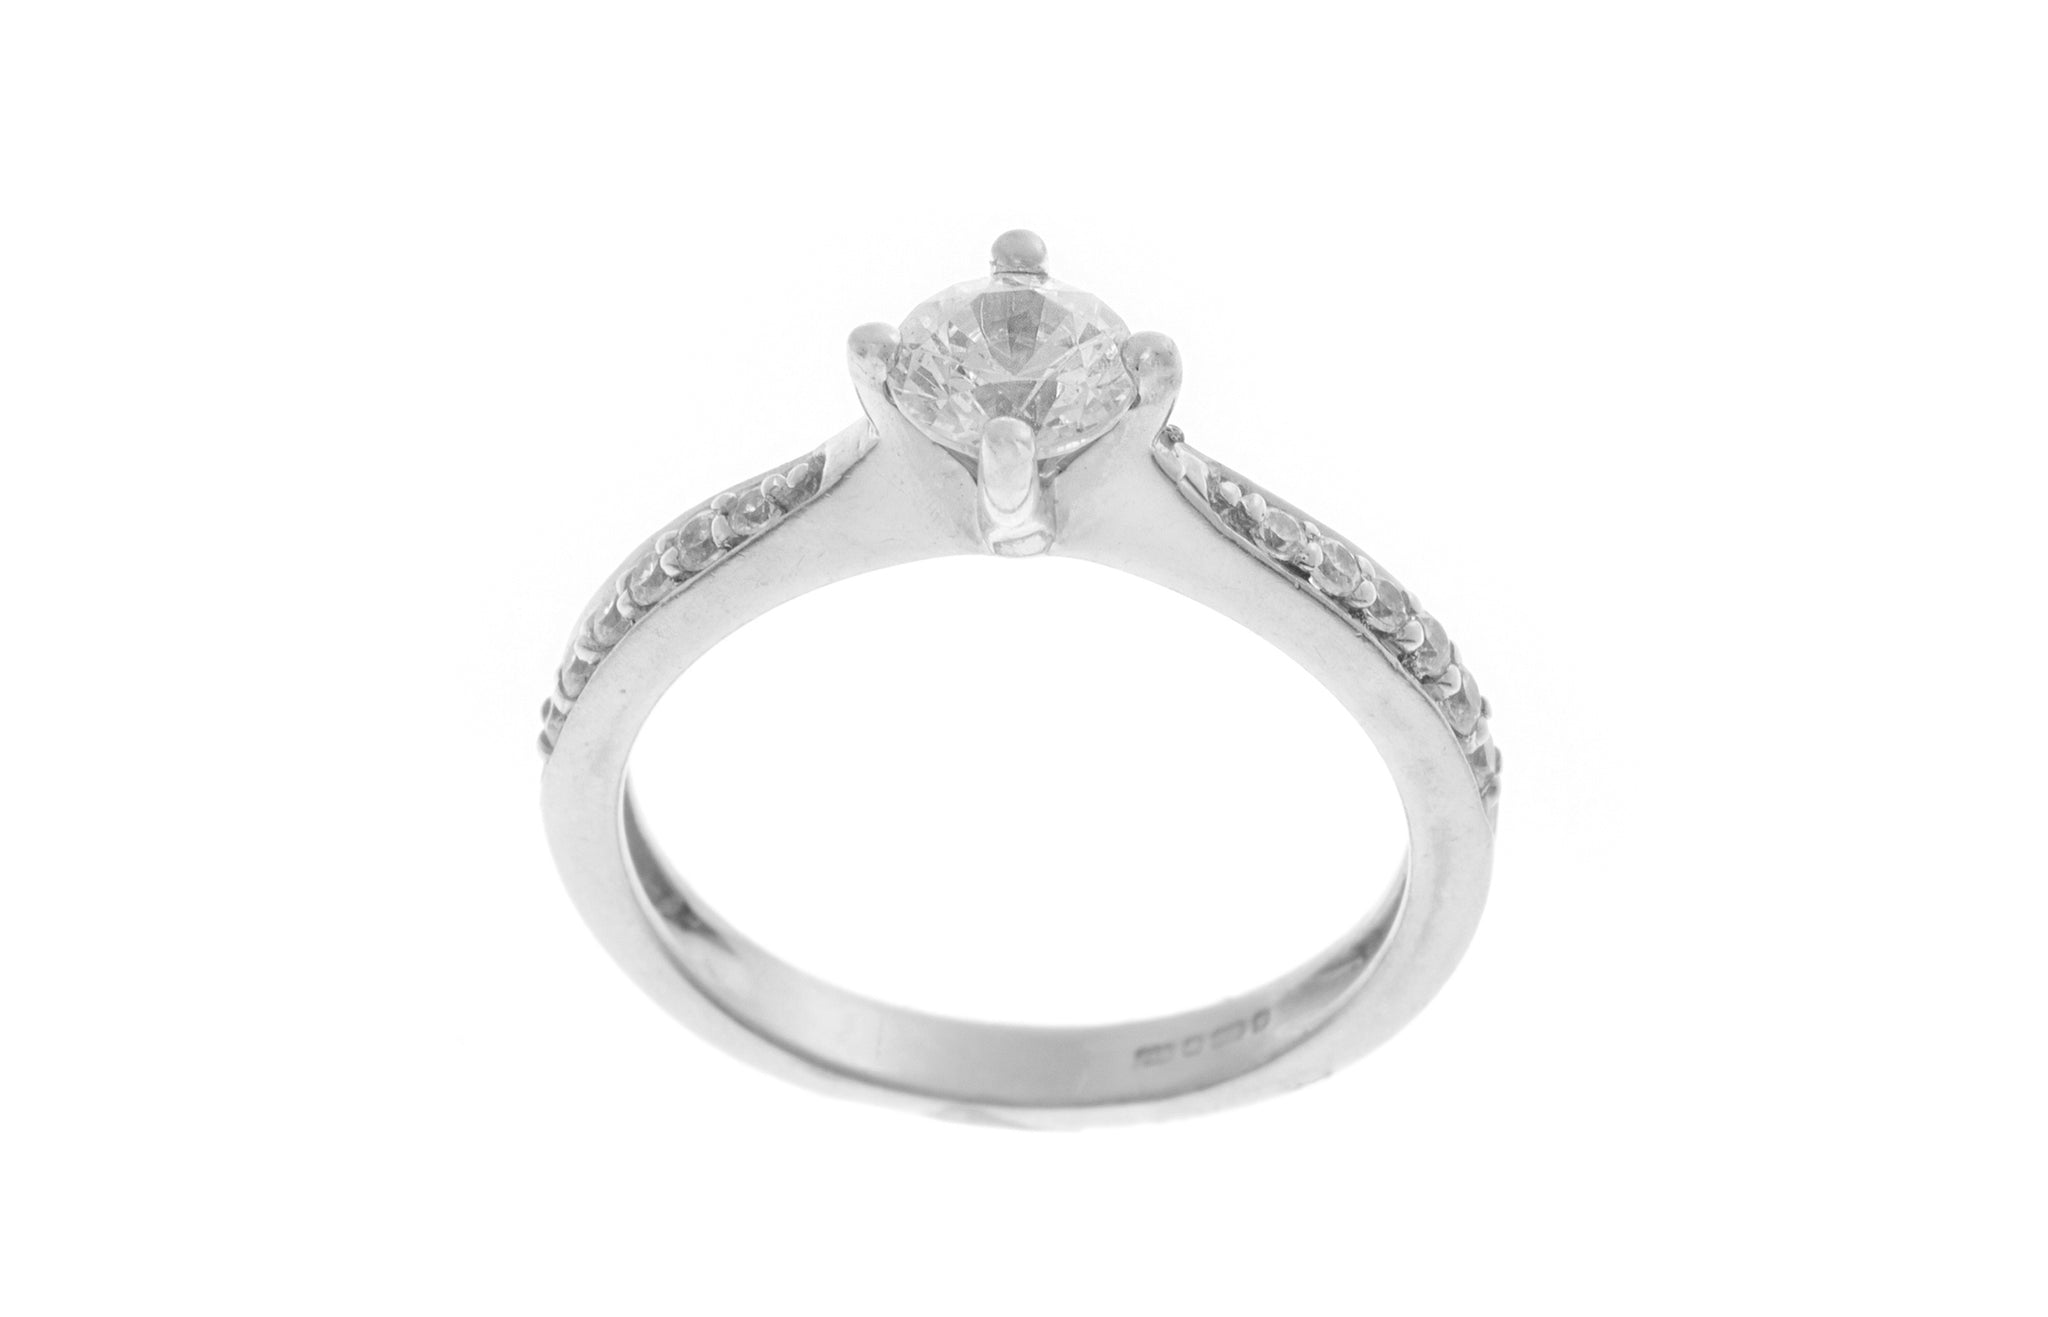 18ct White Gold Cubic Zirconia Engagement Ring VLR11129